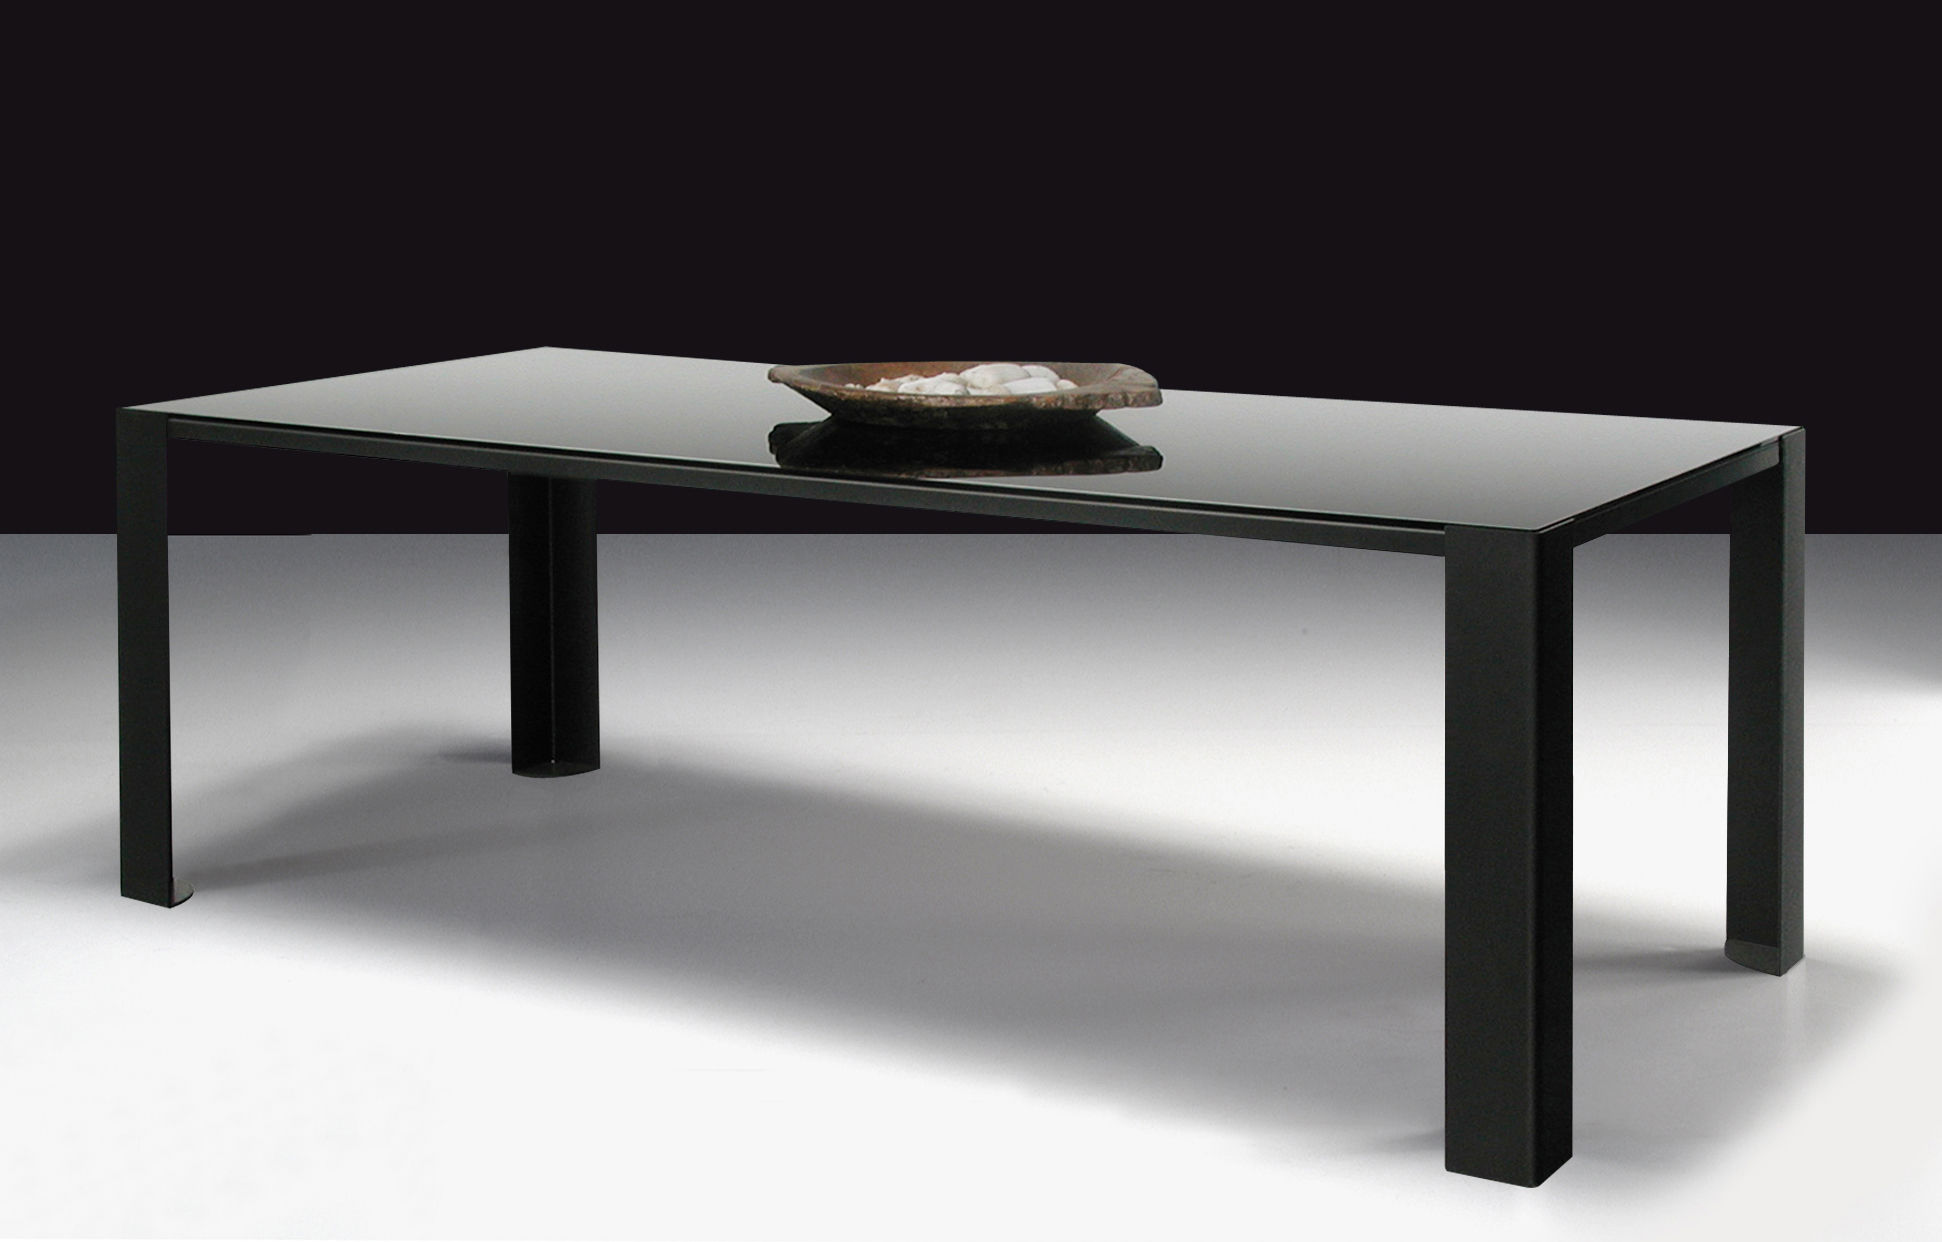 Black glass table top designs